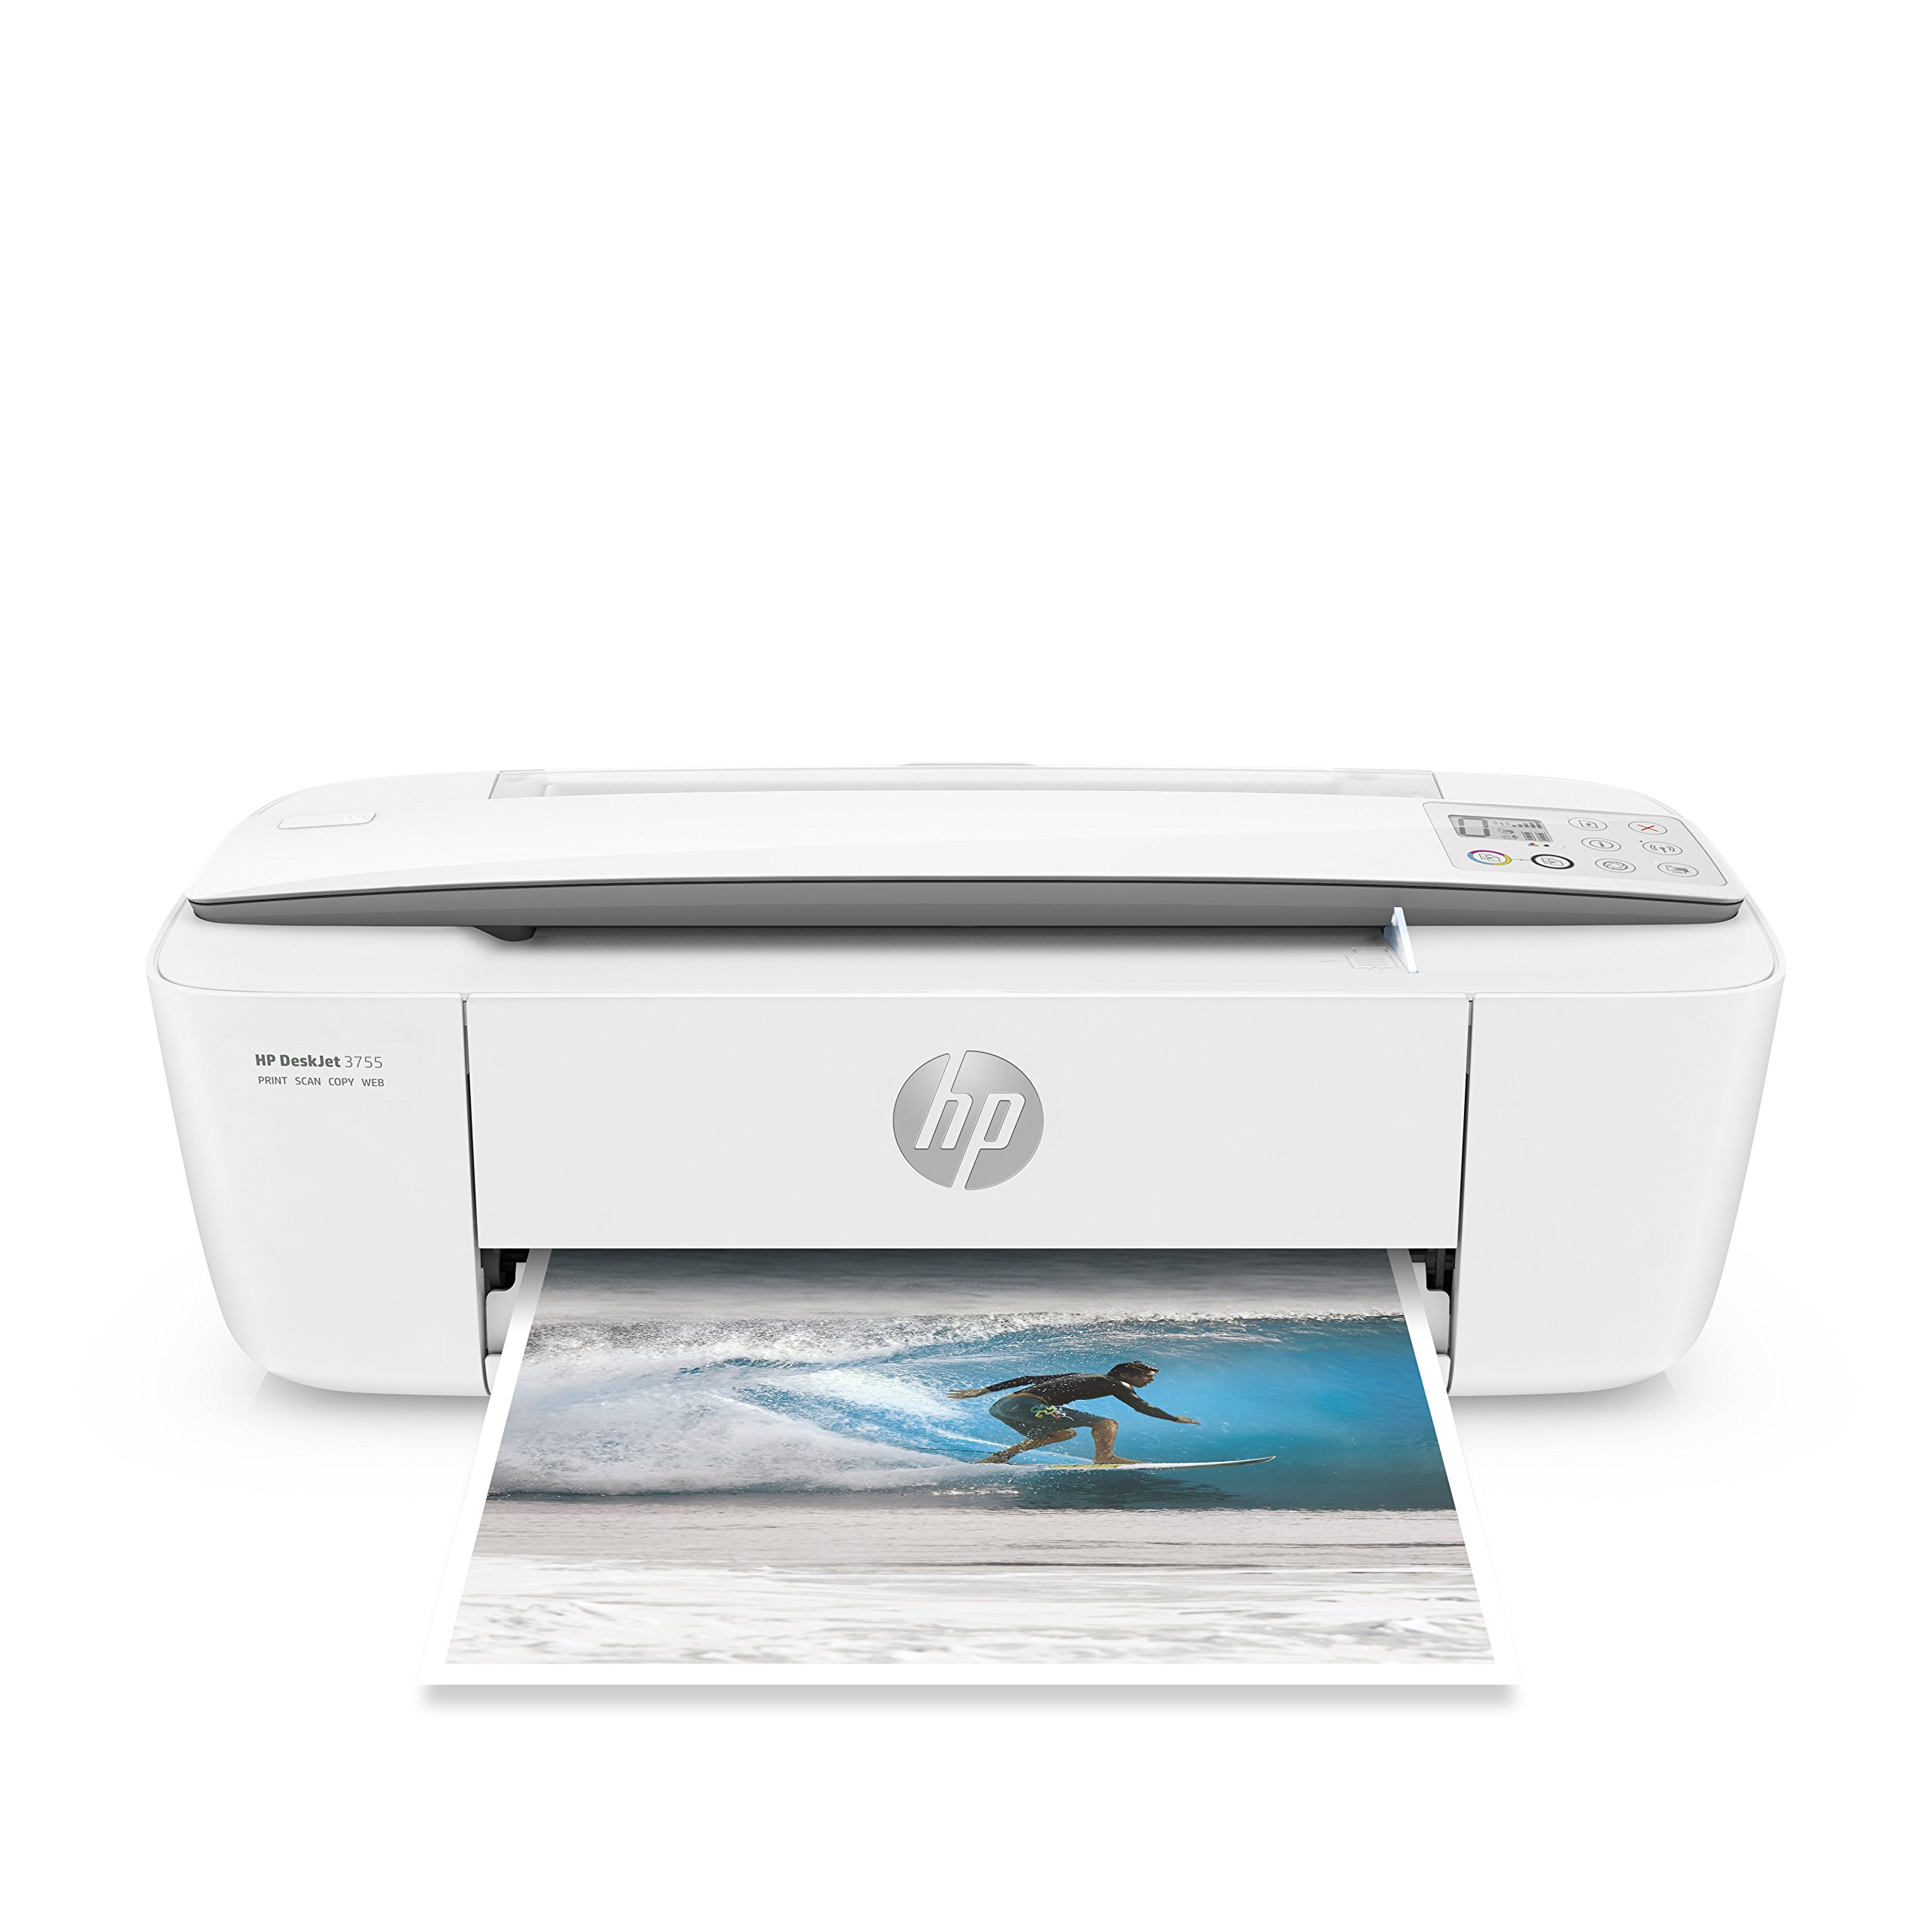 HP DeskJet 3755 Compact All-in-One Wireless Printer, HP Instant Ink & Amazon Dash Replenishment ready - Stone Accent (J9V91A) by HP